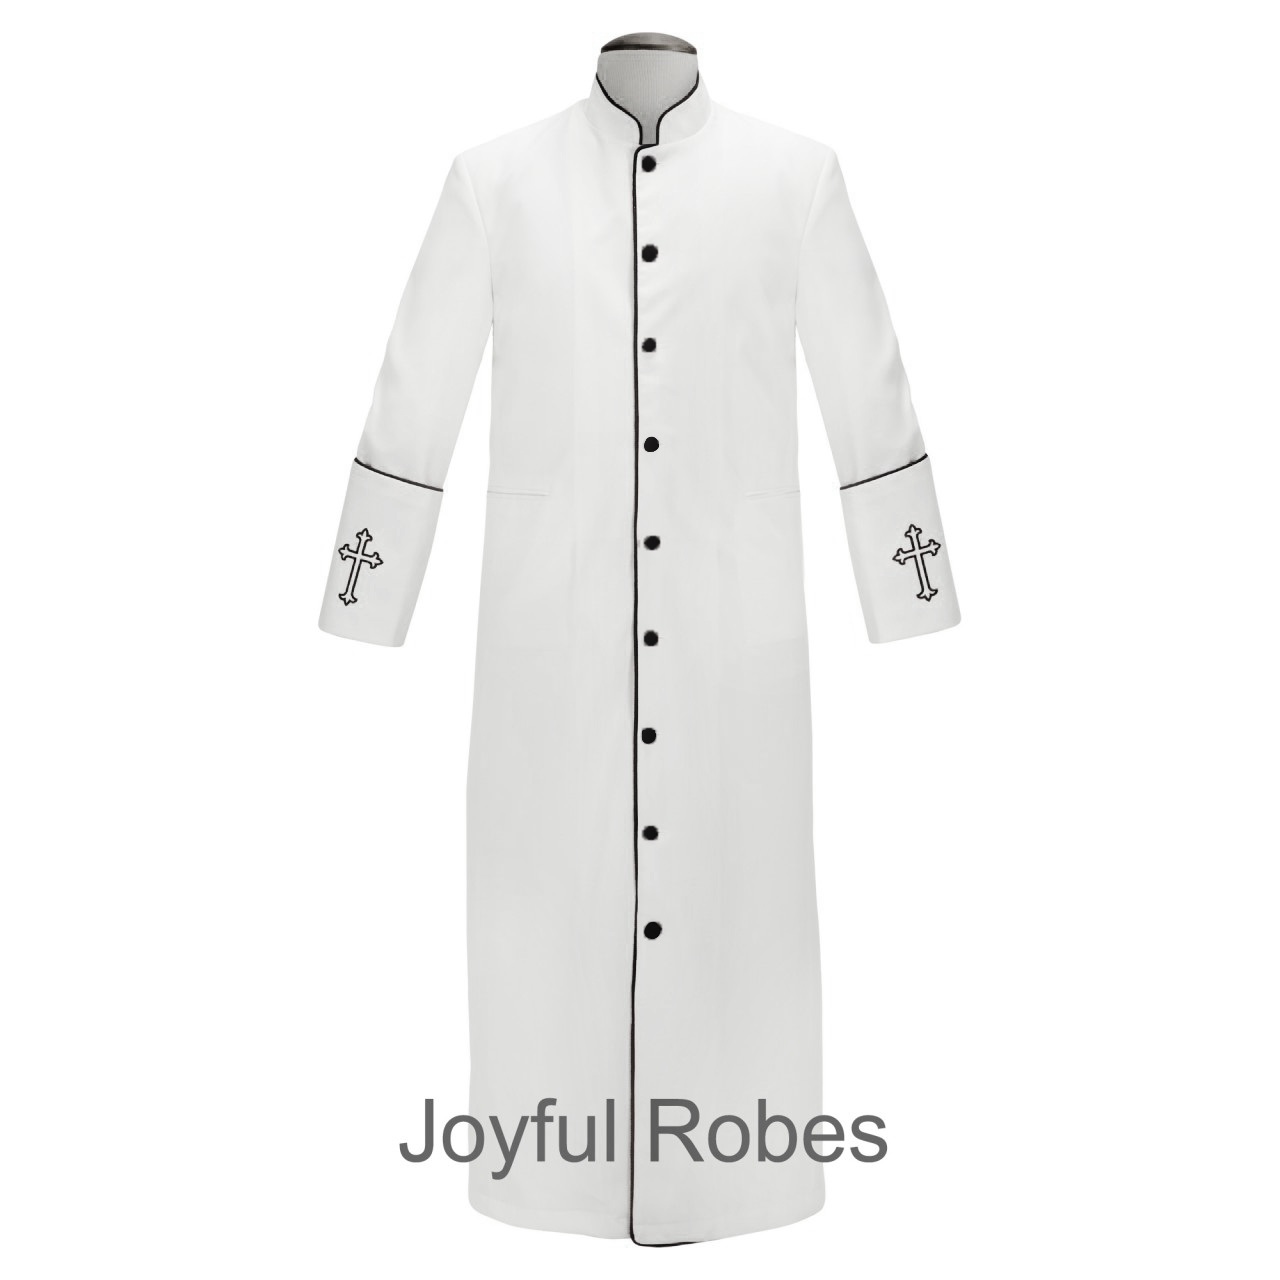 202 M. Men's Clergy/Pastor Robe - White/Black Design Design